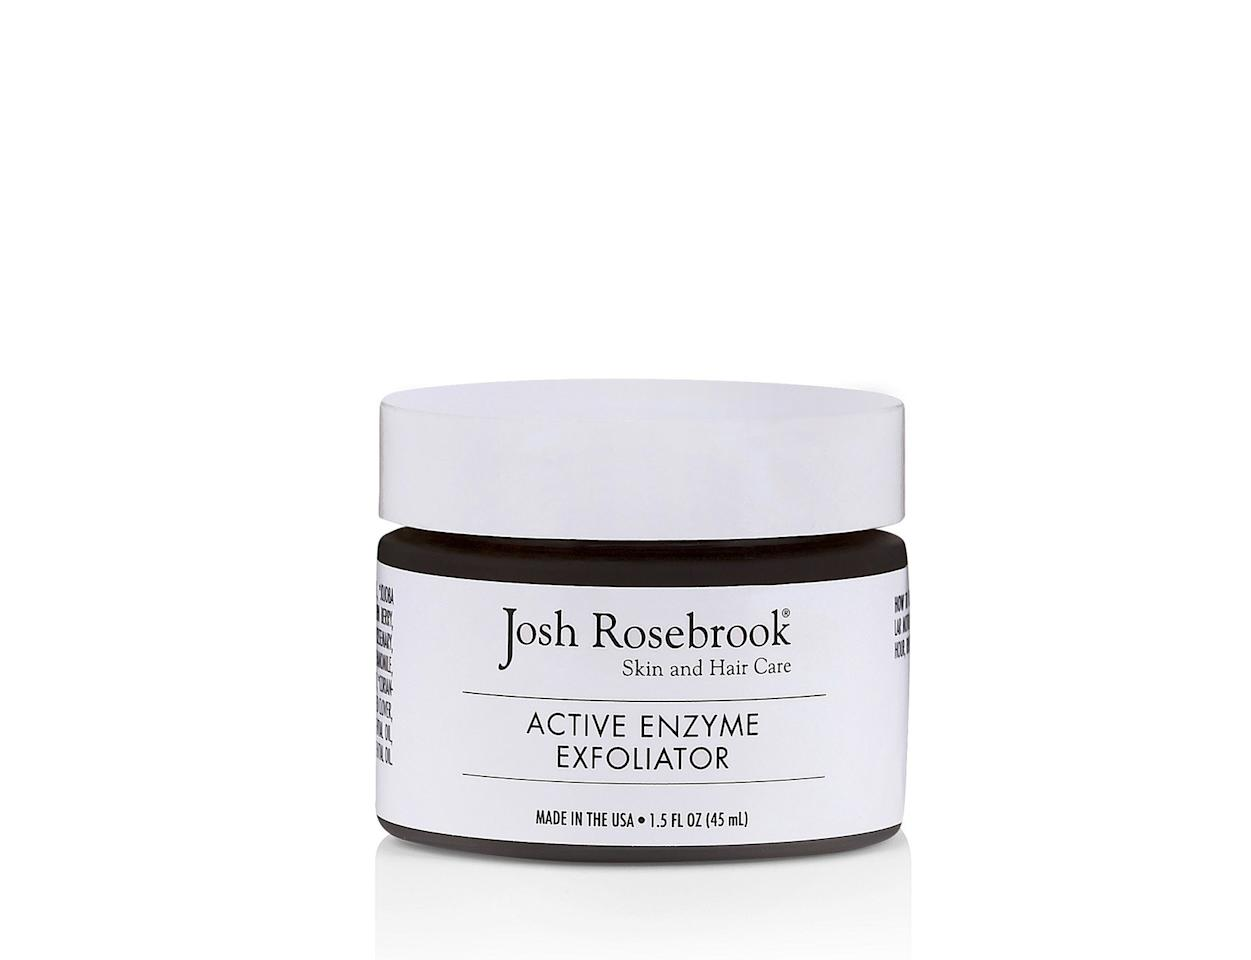 """<p>This resurfacing treatment is a double whammy. Finely ground walnut shells give a gentle scrub to renew skin's surface, while potent herb, plant, and fruit enzymes work to remove dead skin cells. The result? A youthful and glowing complexion. (<em>Active Enzyme Exfoliator, $60</em>, <a rel=""""nofollow"""" href=""""https://joshrosebrook.com/products/active-enzyme-exfoliator?mbid=synd_yahoobeauty""""><em>Josh Rosebrook</em></a>)</p>"""